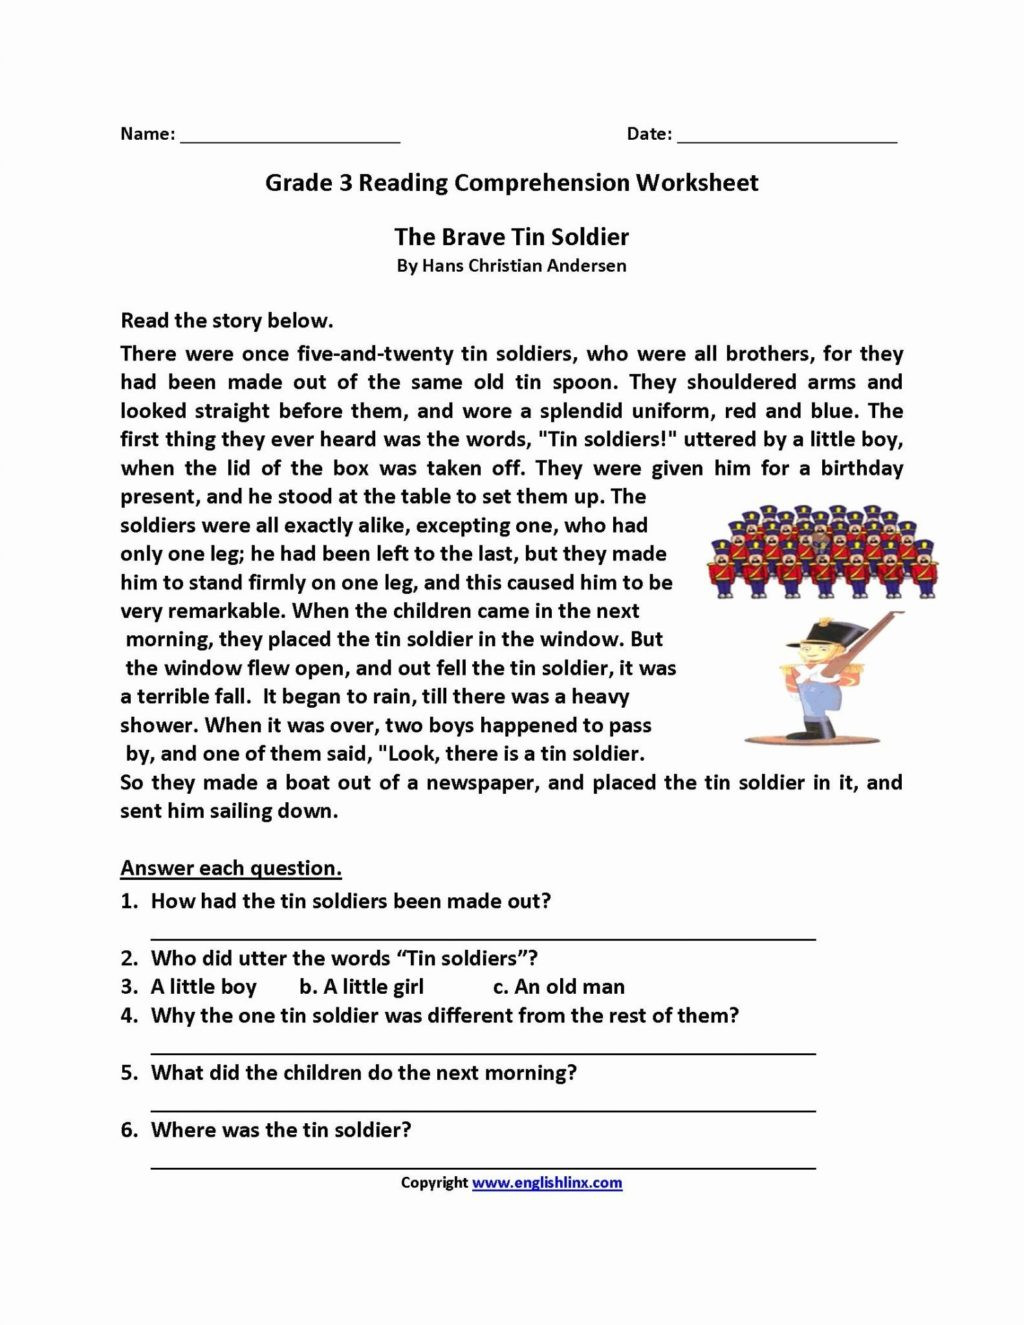 Compare and Contrast Reading Worksheets Worksheet Extraordinary Secondde Worksheets Pdf Picture